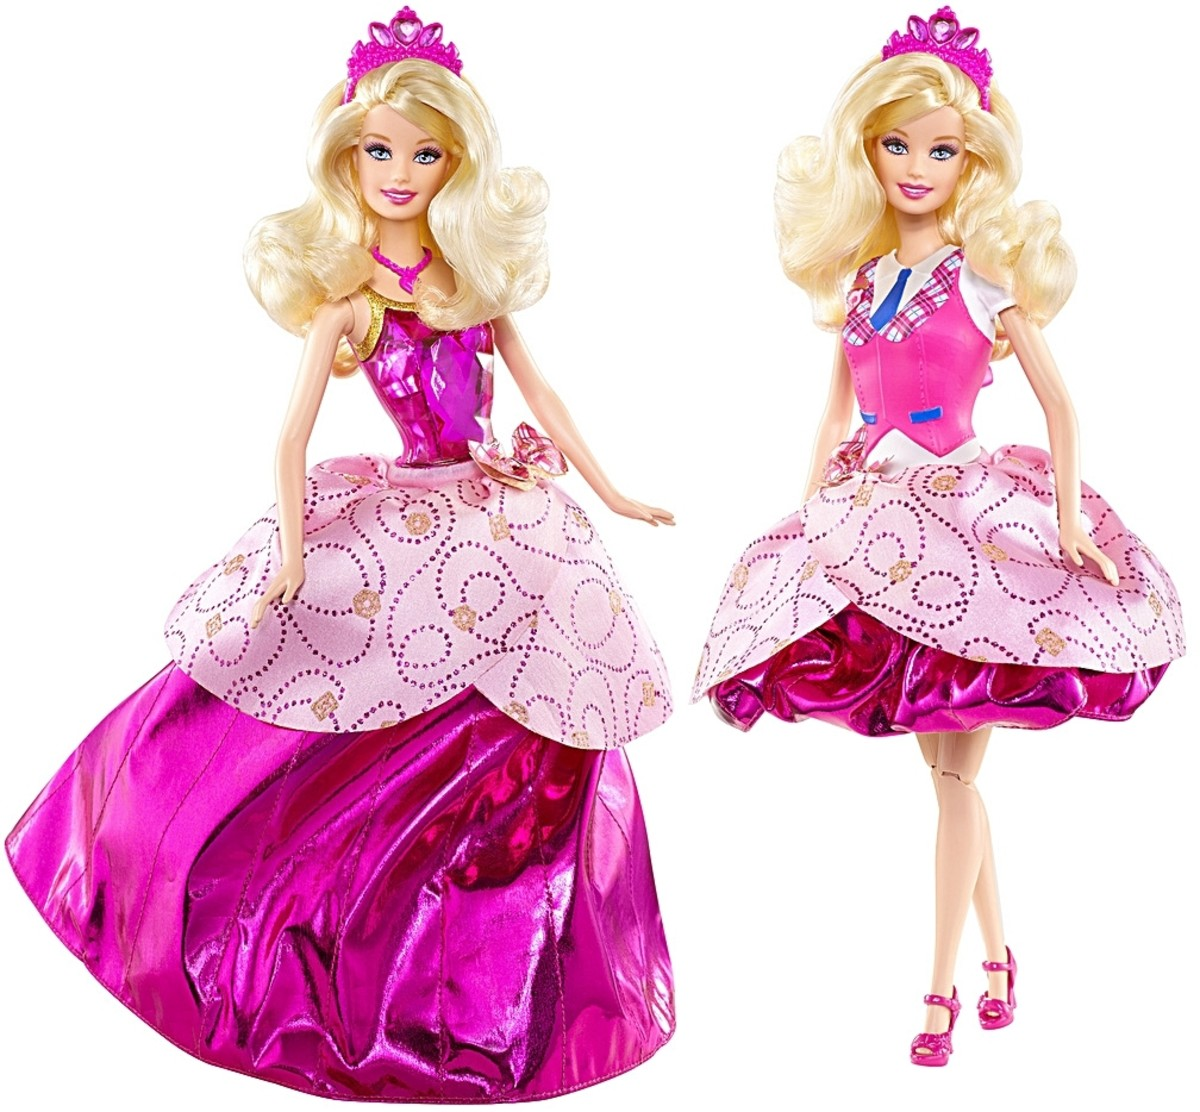 Modern Toys - Barbie remains the favorites for girls